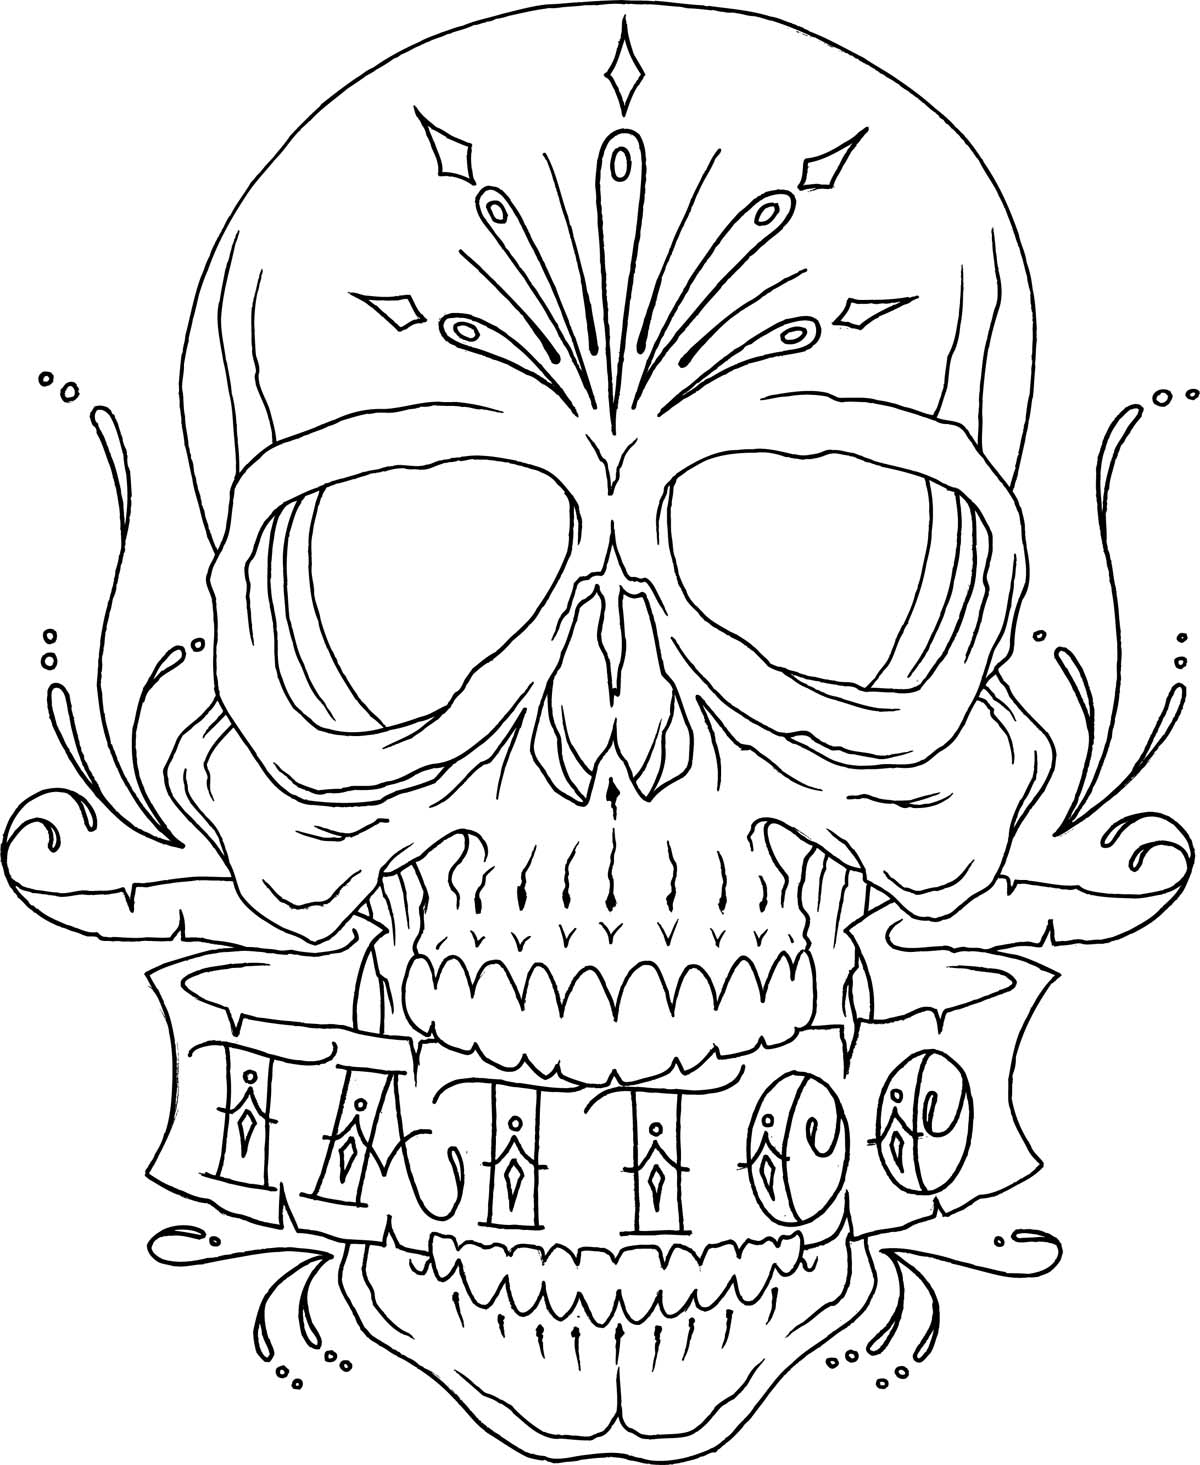 1200x1465 Skull Tattoo Line Drawing Coloring Sheets